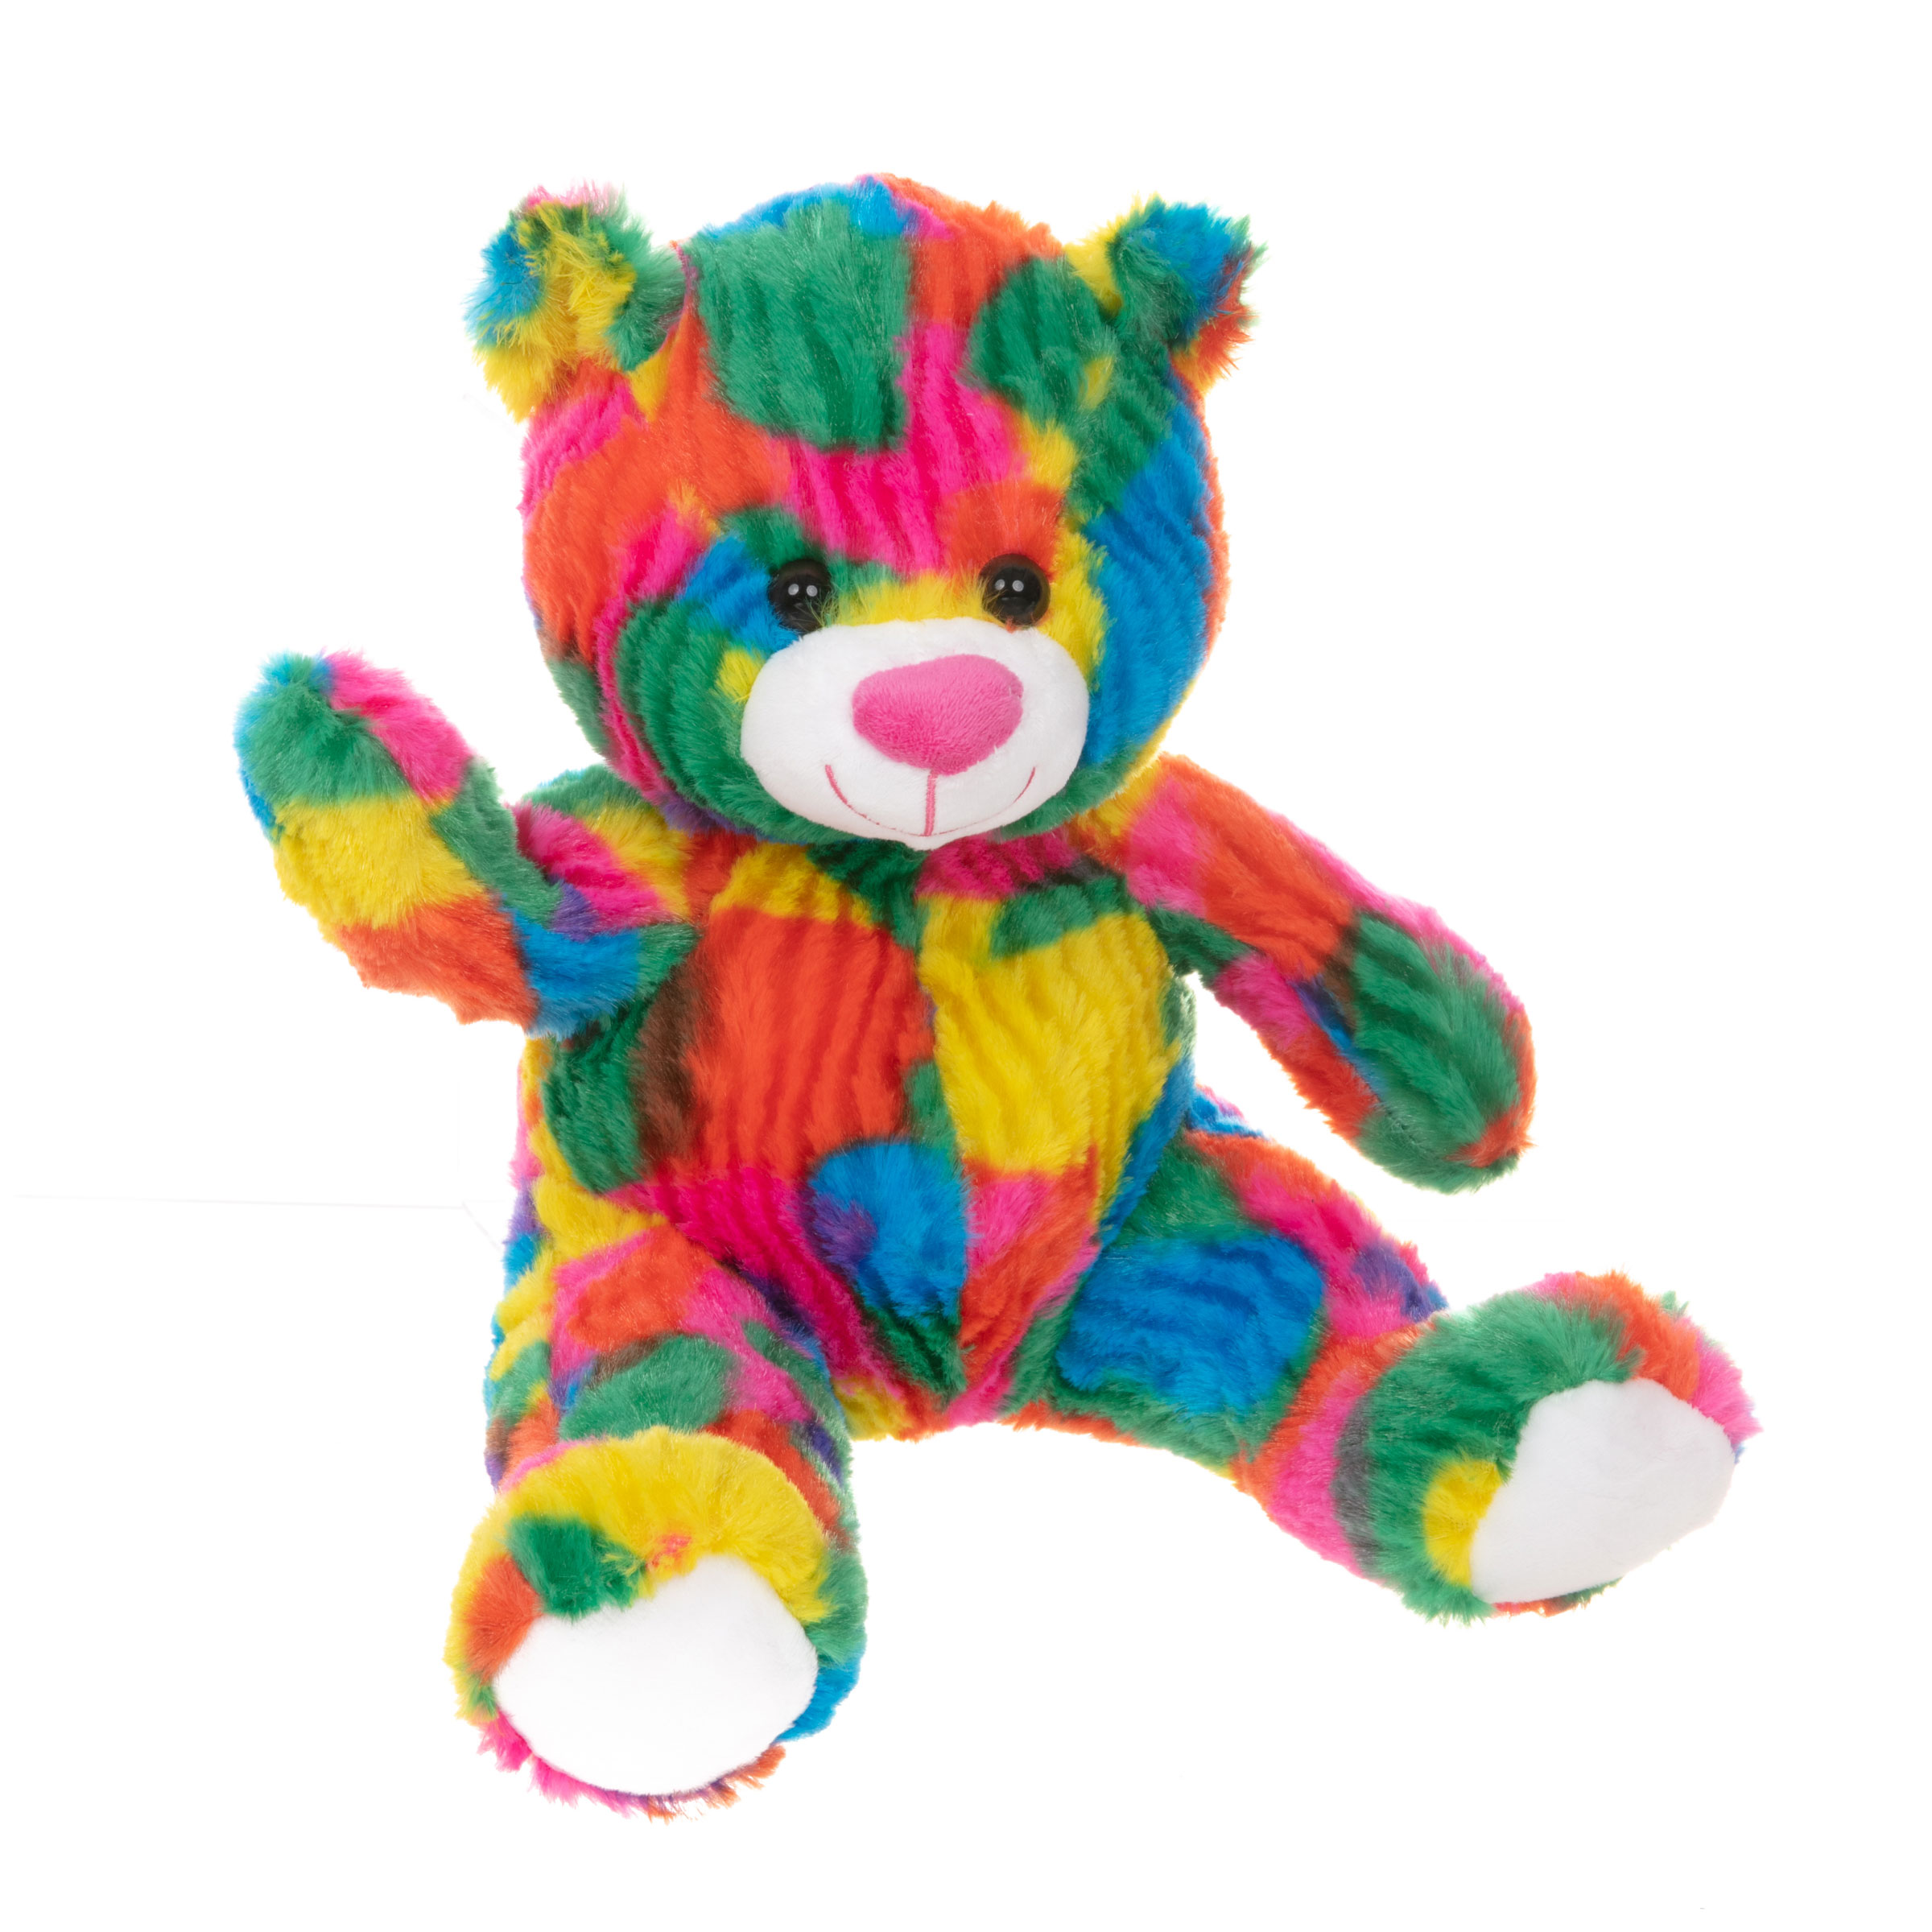 Bright the Rainbow Teddy Bear